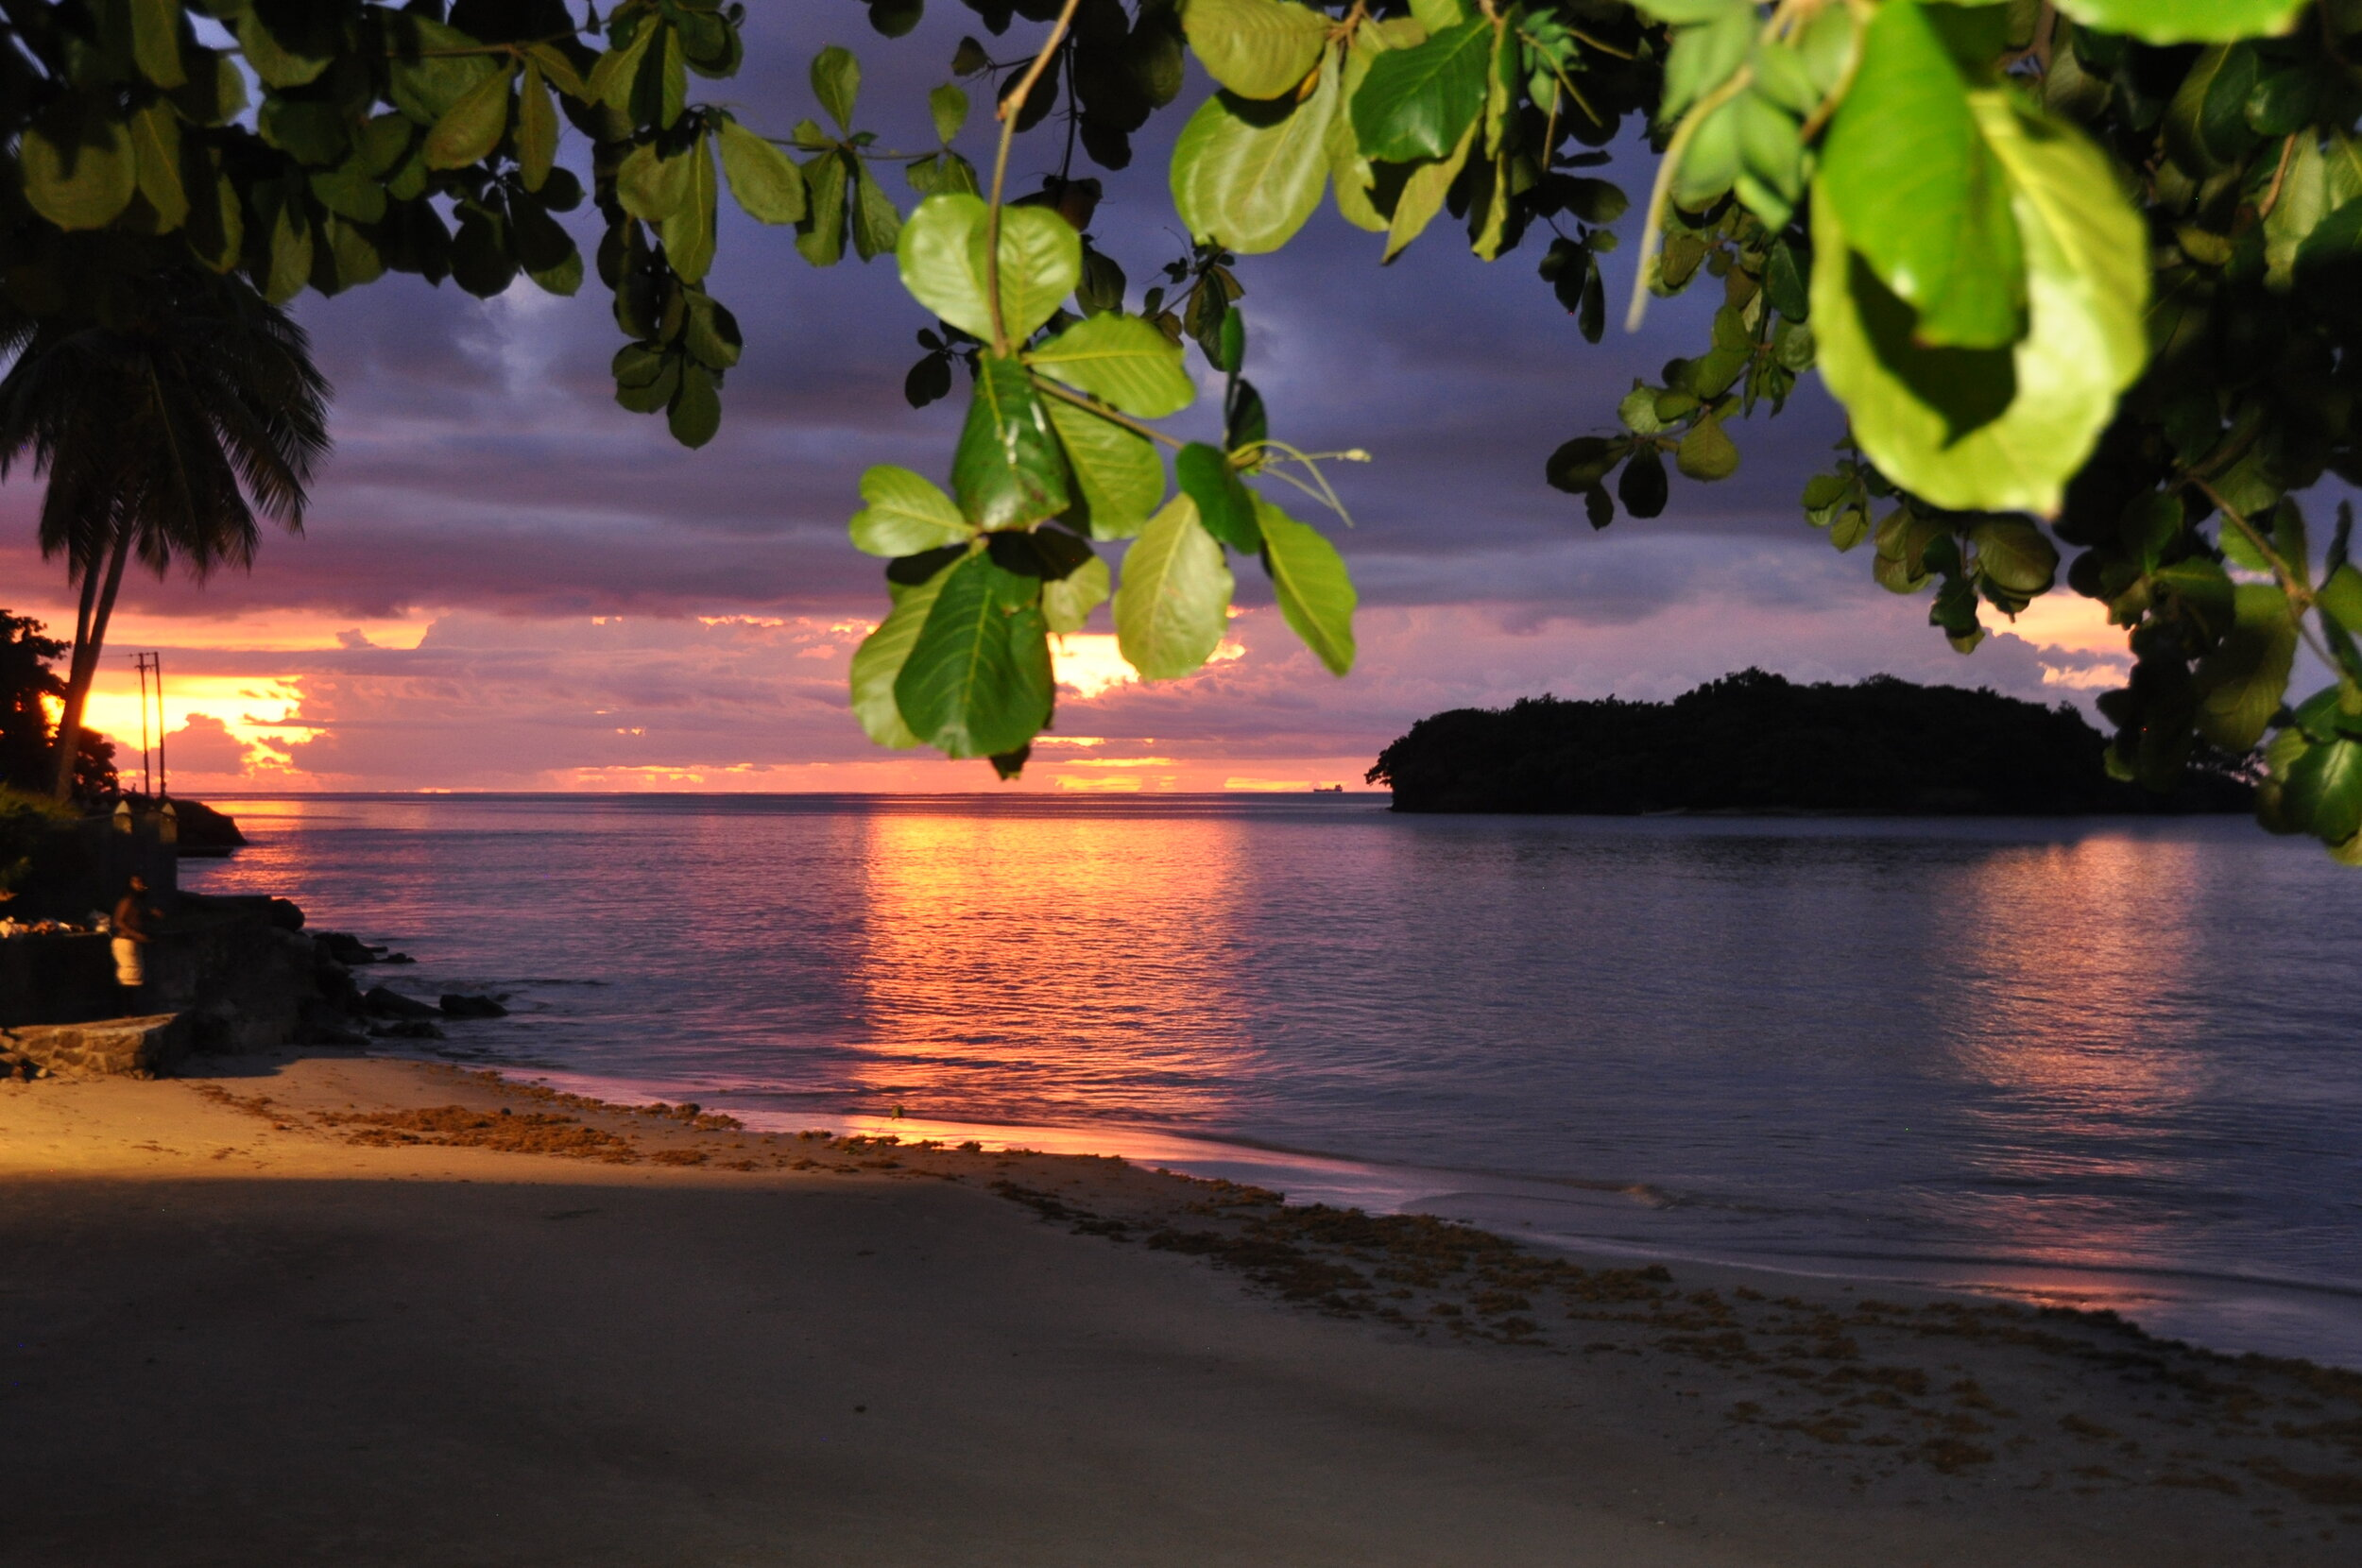 sunset with private island .jpg